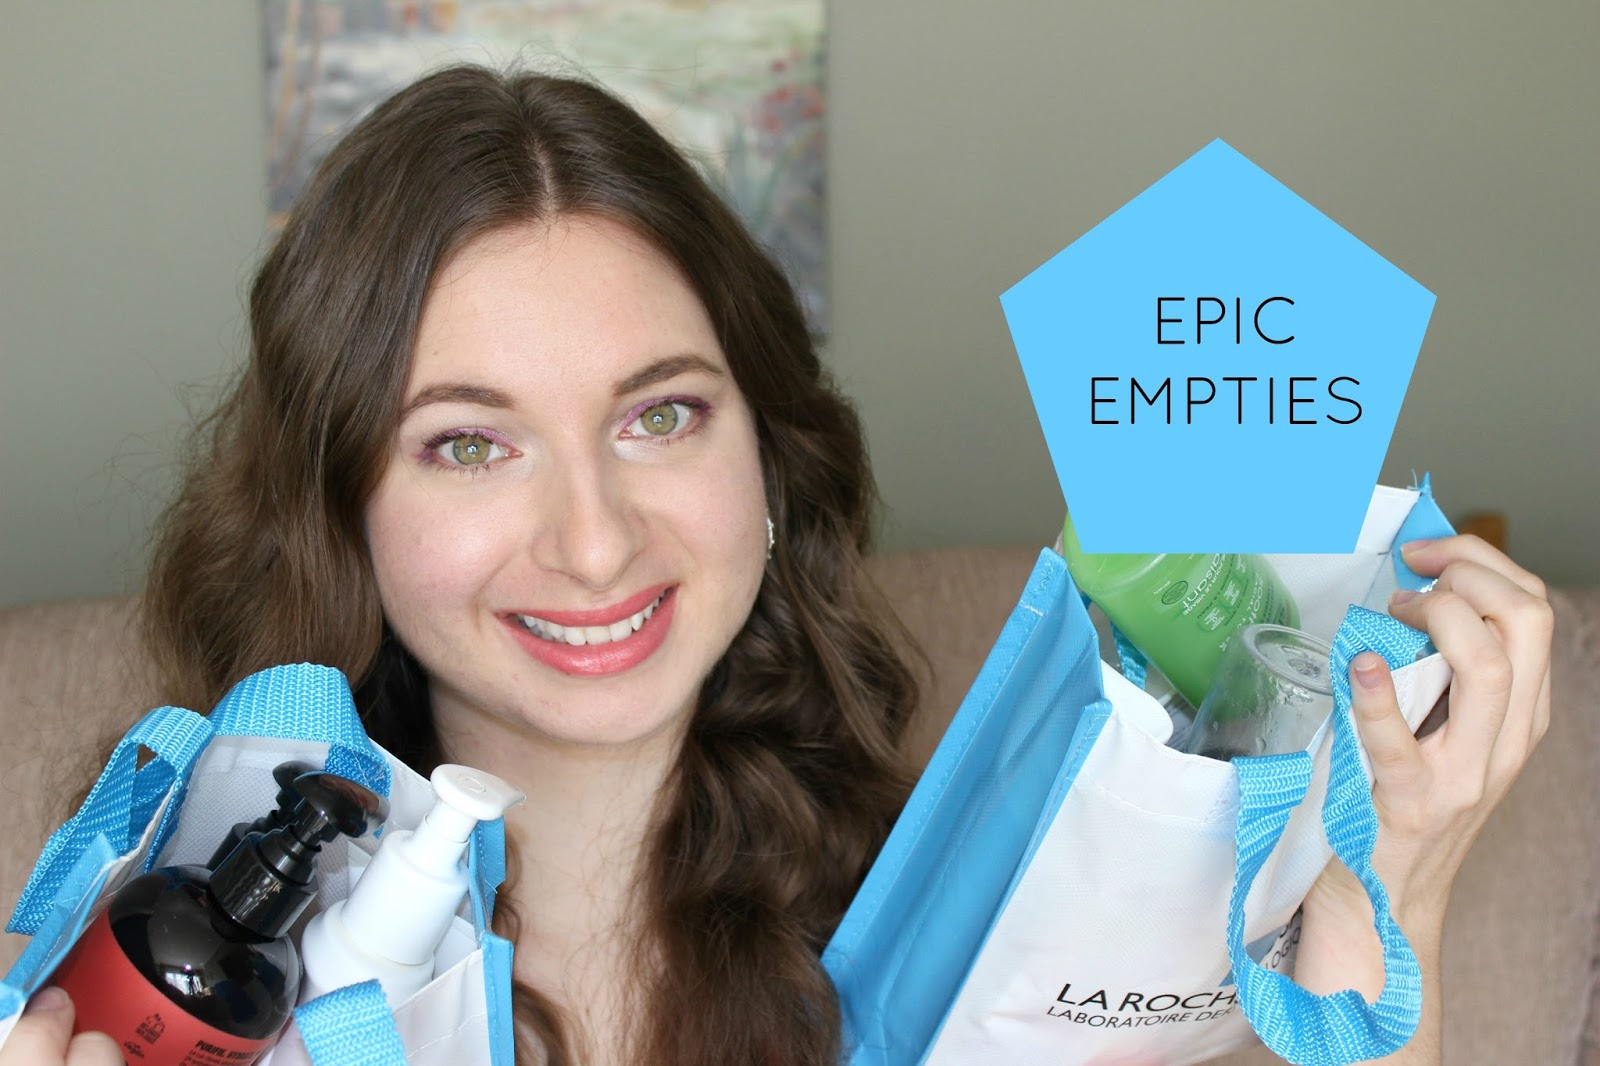 Epic Empties